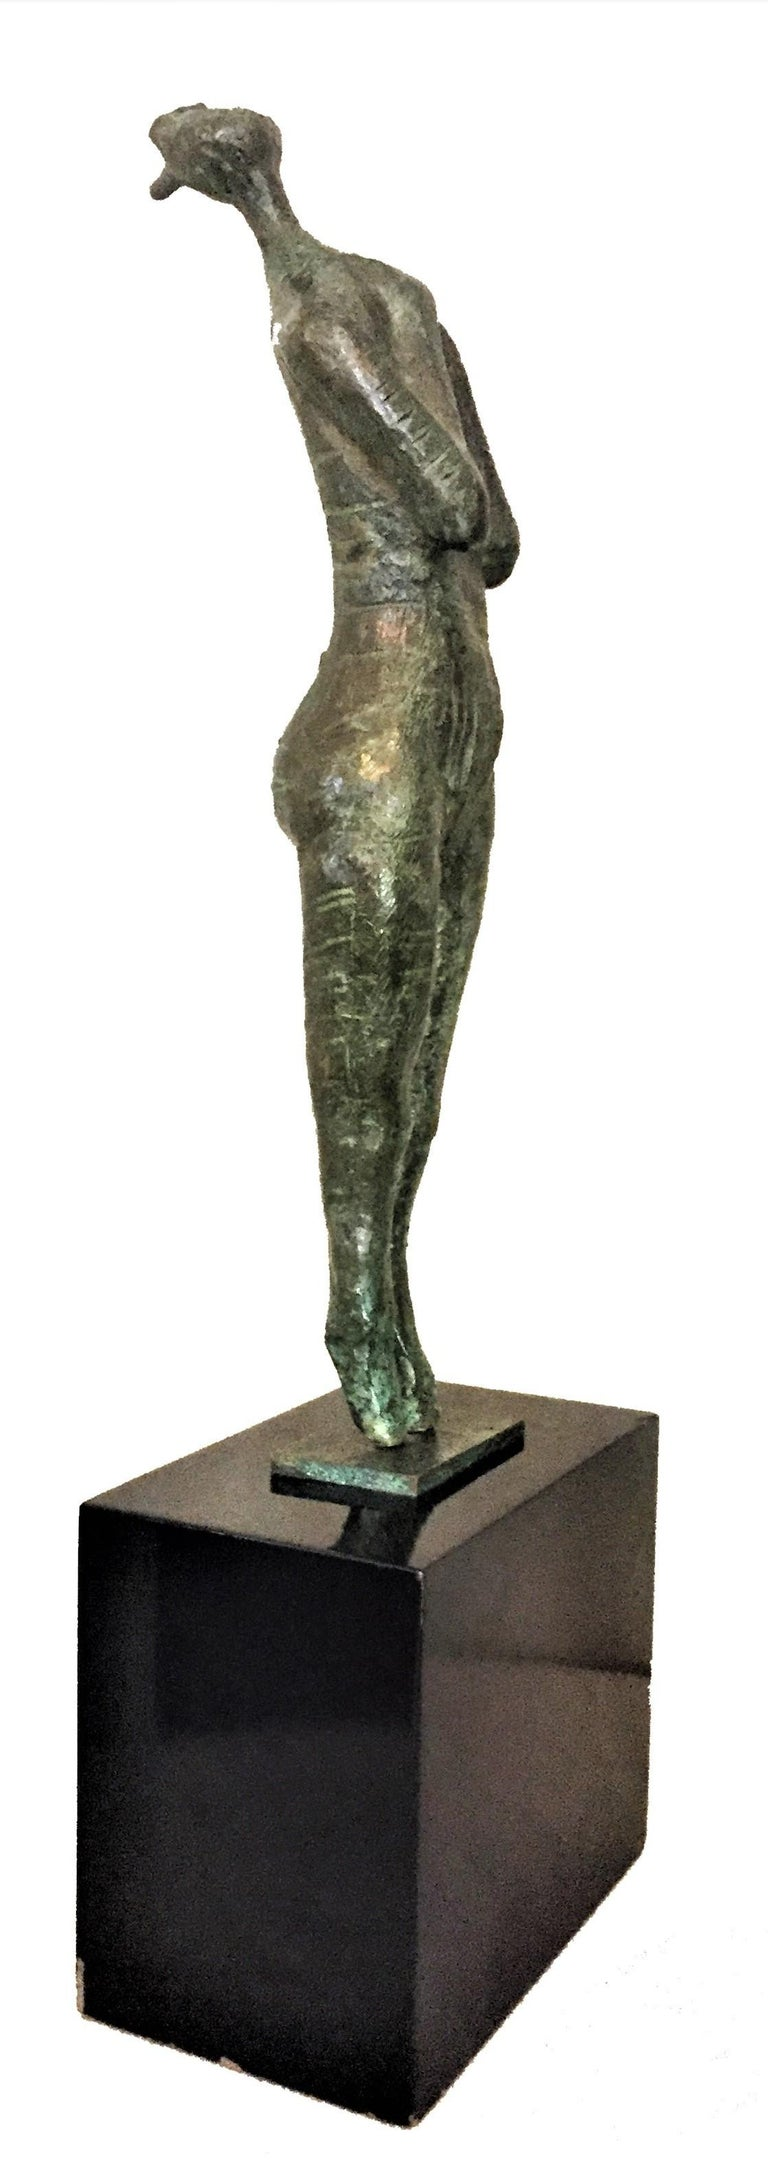 """Signed """"Igor '67"""", this beautifully cast patinated bronze sculpture depicts a woman on tiptoe, arms folded across h?? chest, head up and screaming with all her might, mouth wide open. Original lacquered wood base.  Dimensions: Height (max):"""